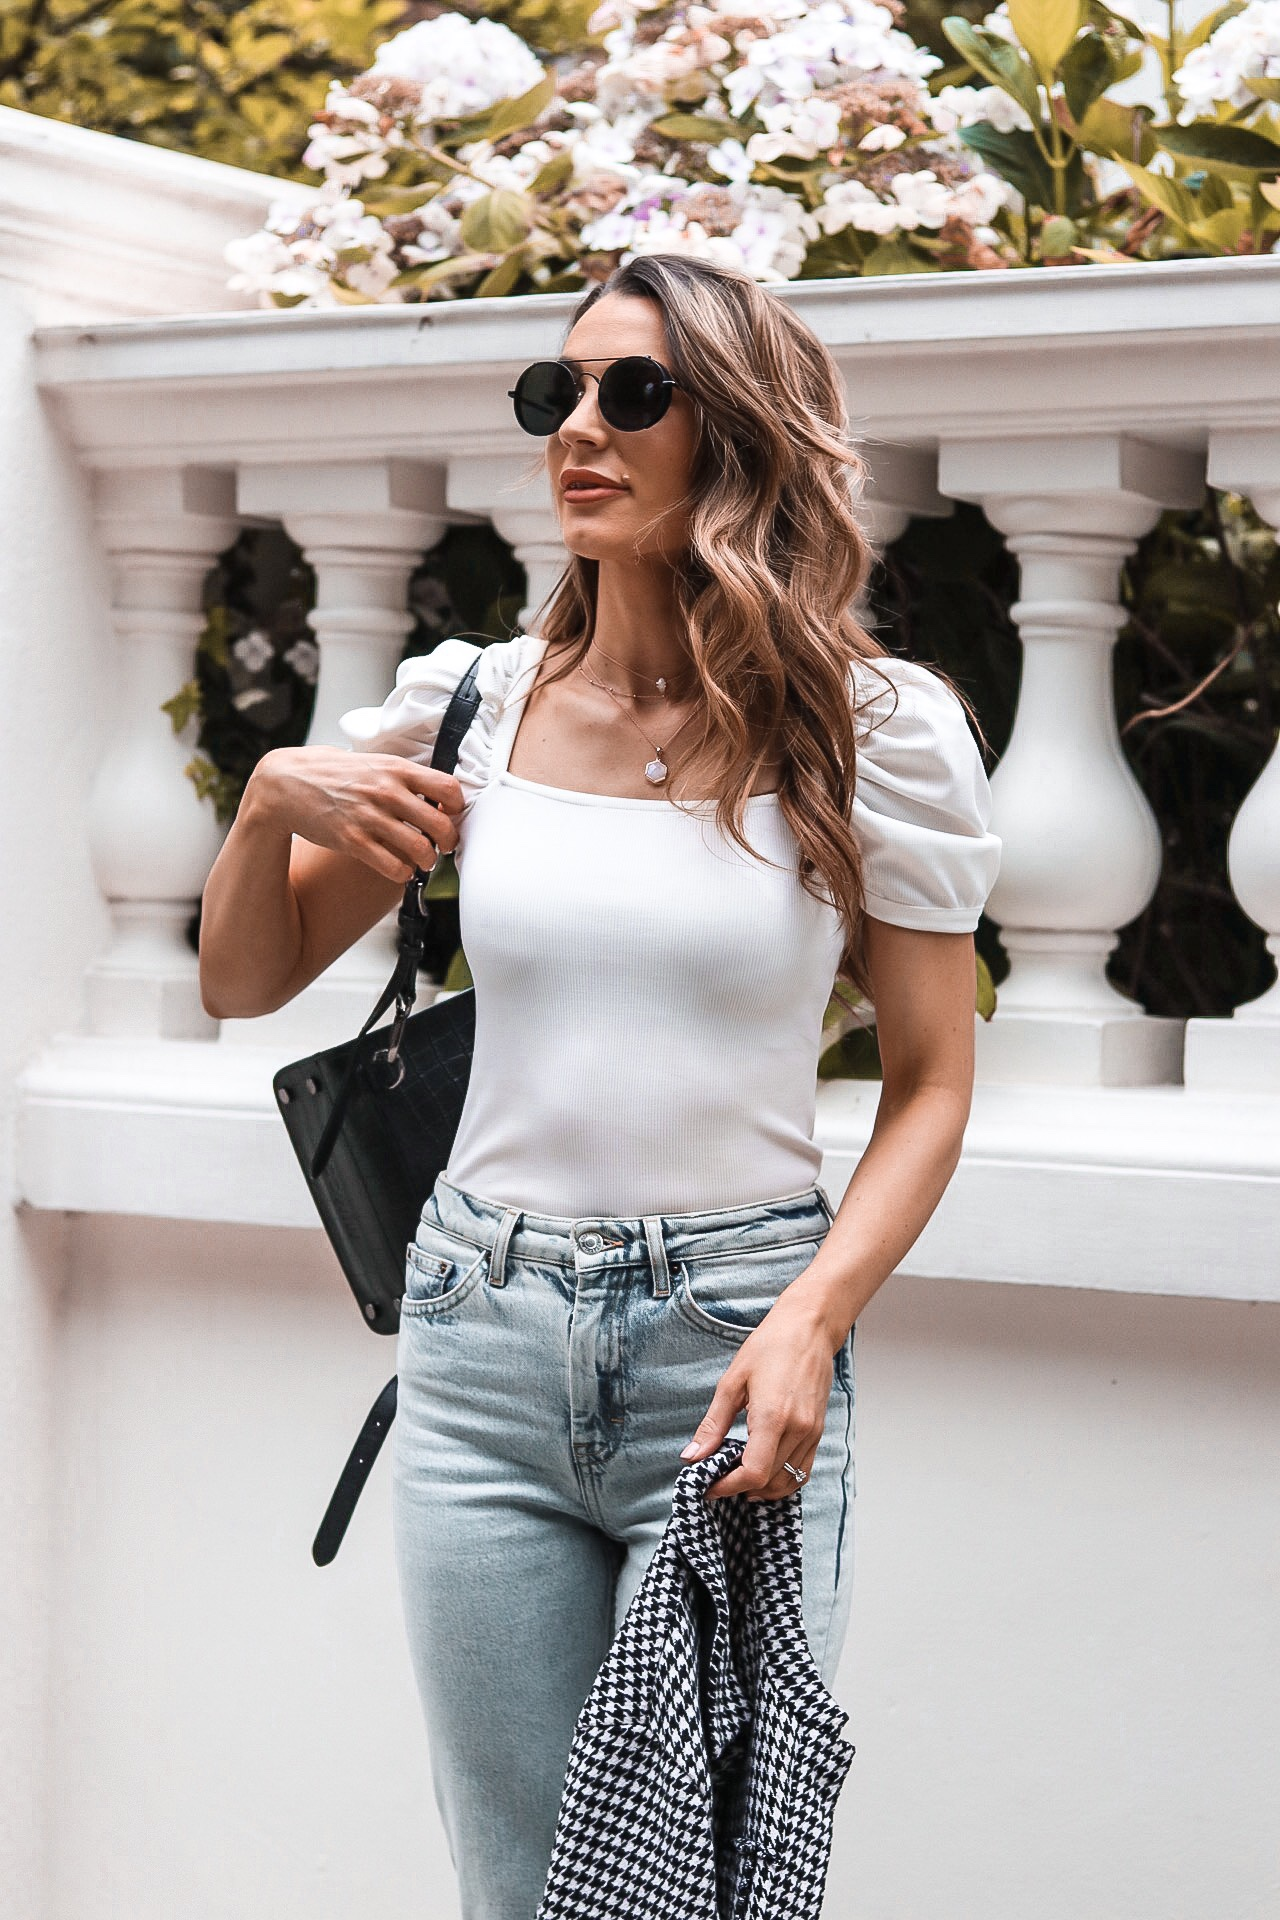 denim outfit, denim, denim jeans, top shop jeans, jeans Inspo, jeans outfit, puffy sleeves, hair Inso, London, notting hill, visit england, visit london, how to wear the straight leg jean